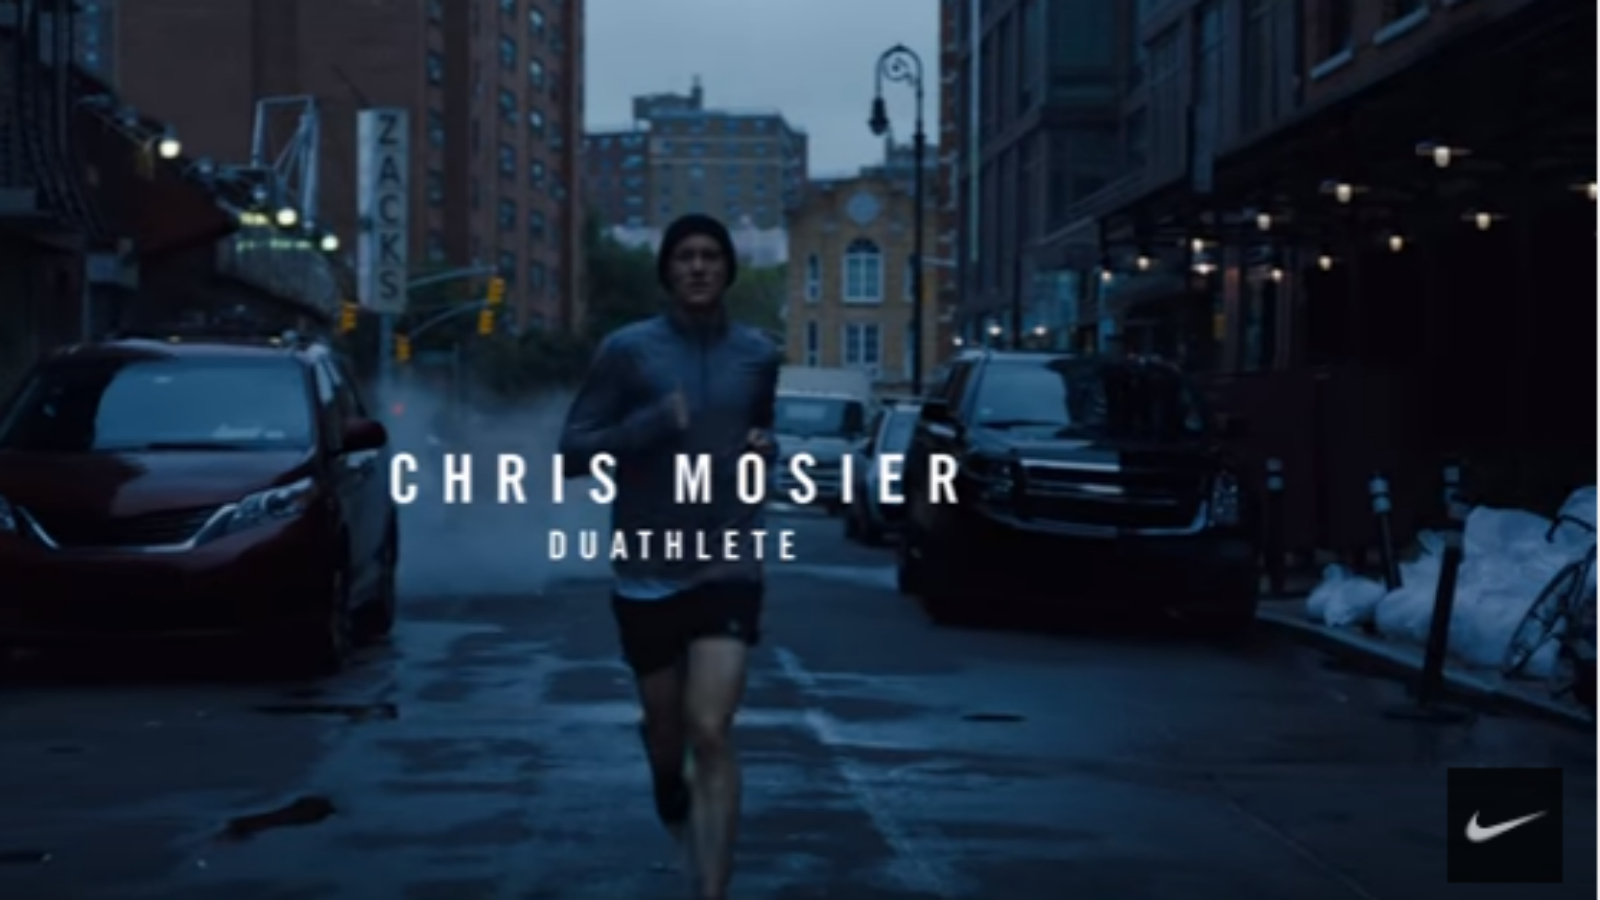 Chris Mosier; Transgender; Nike Ad